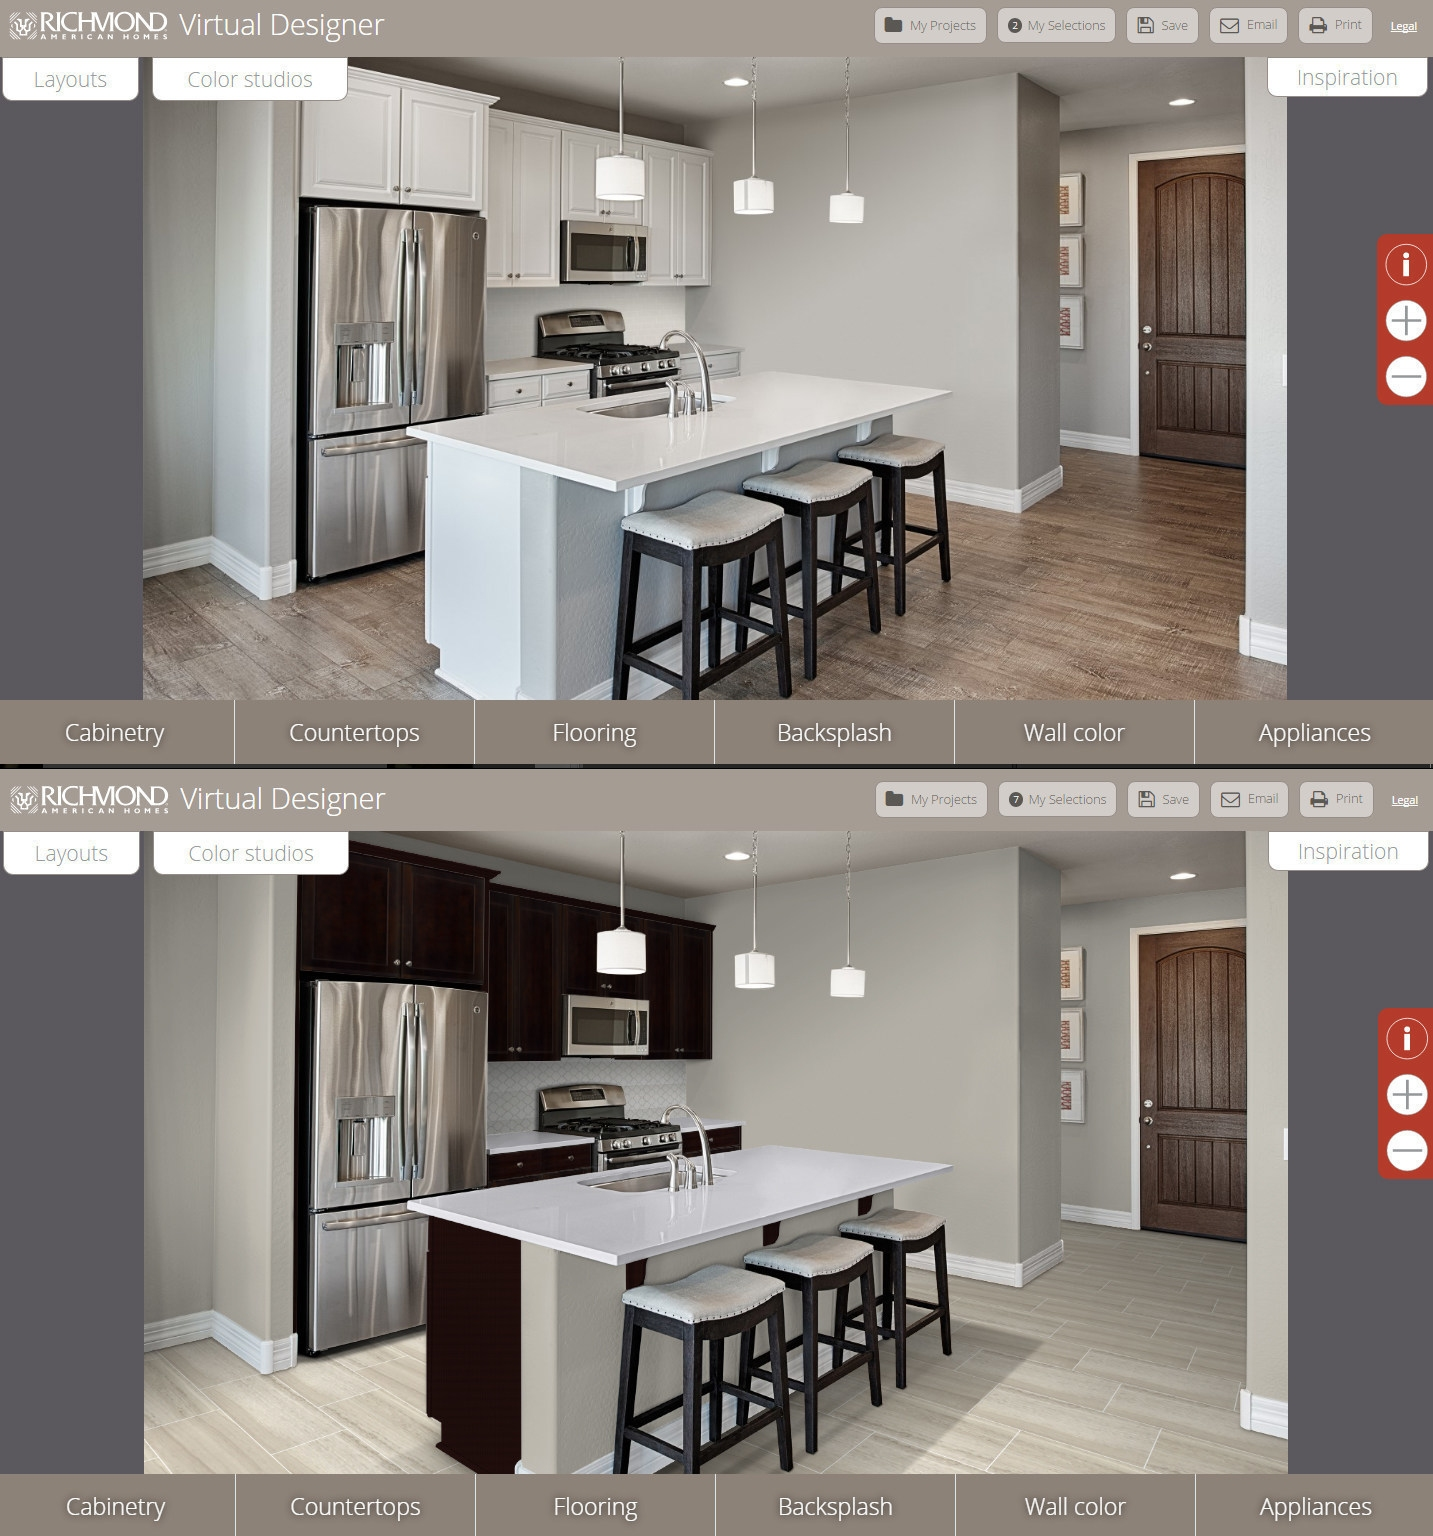 arizona home builder launches virtual kitchen design tool virtual kitchen designer A virtual design tool that realistically presents flooring cabinetry countertops backsplashes and other home design elements in place was launched by